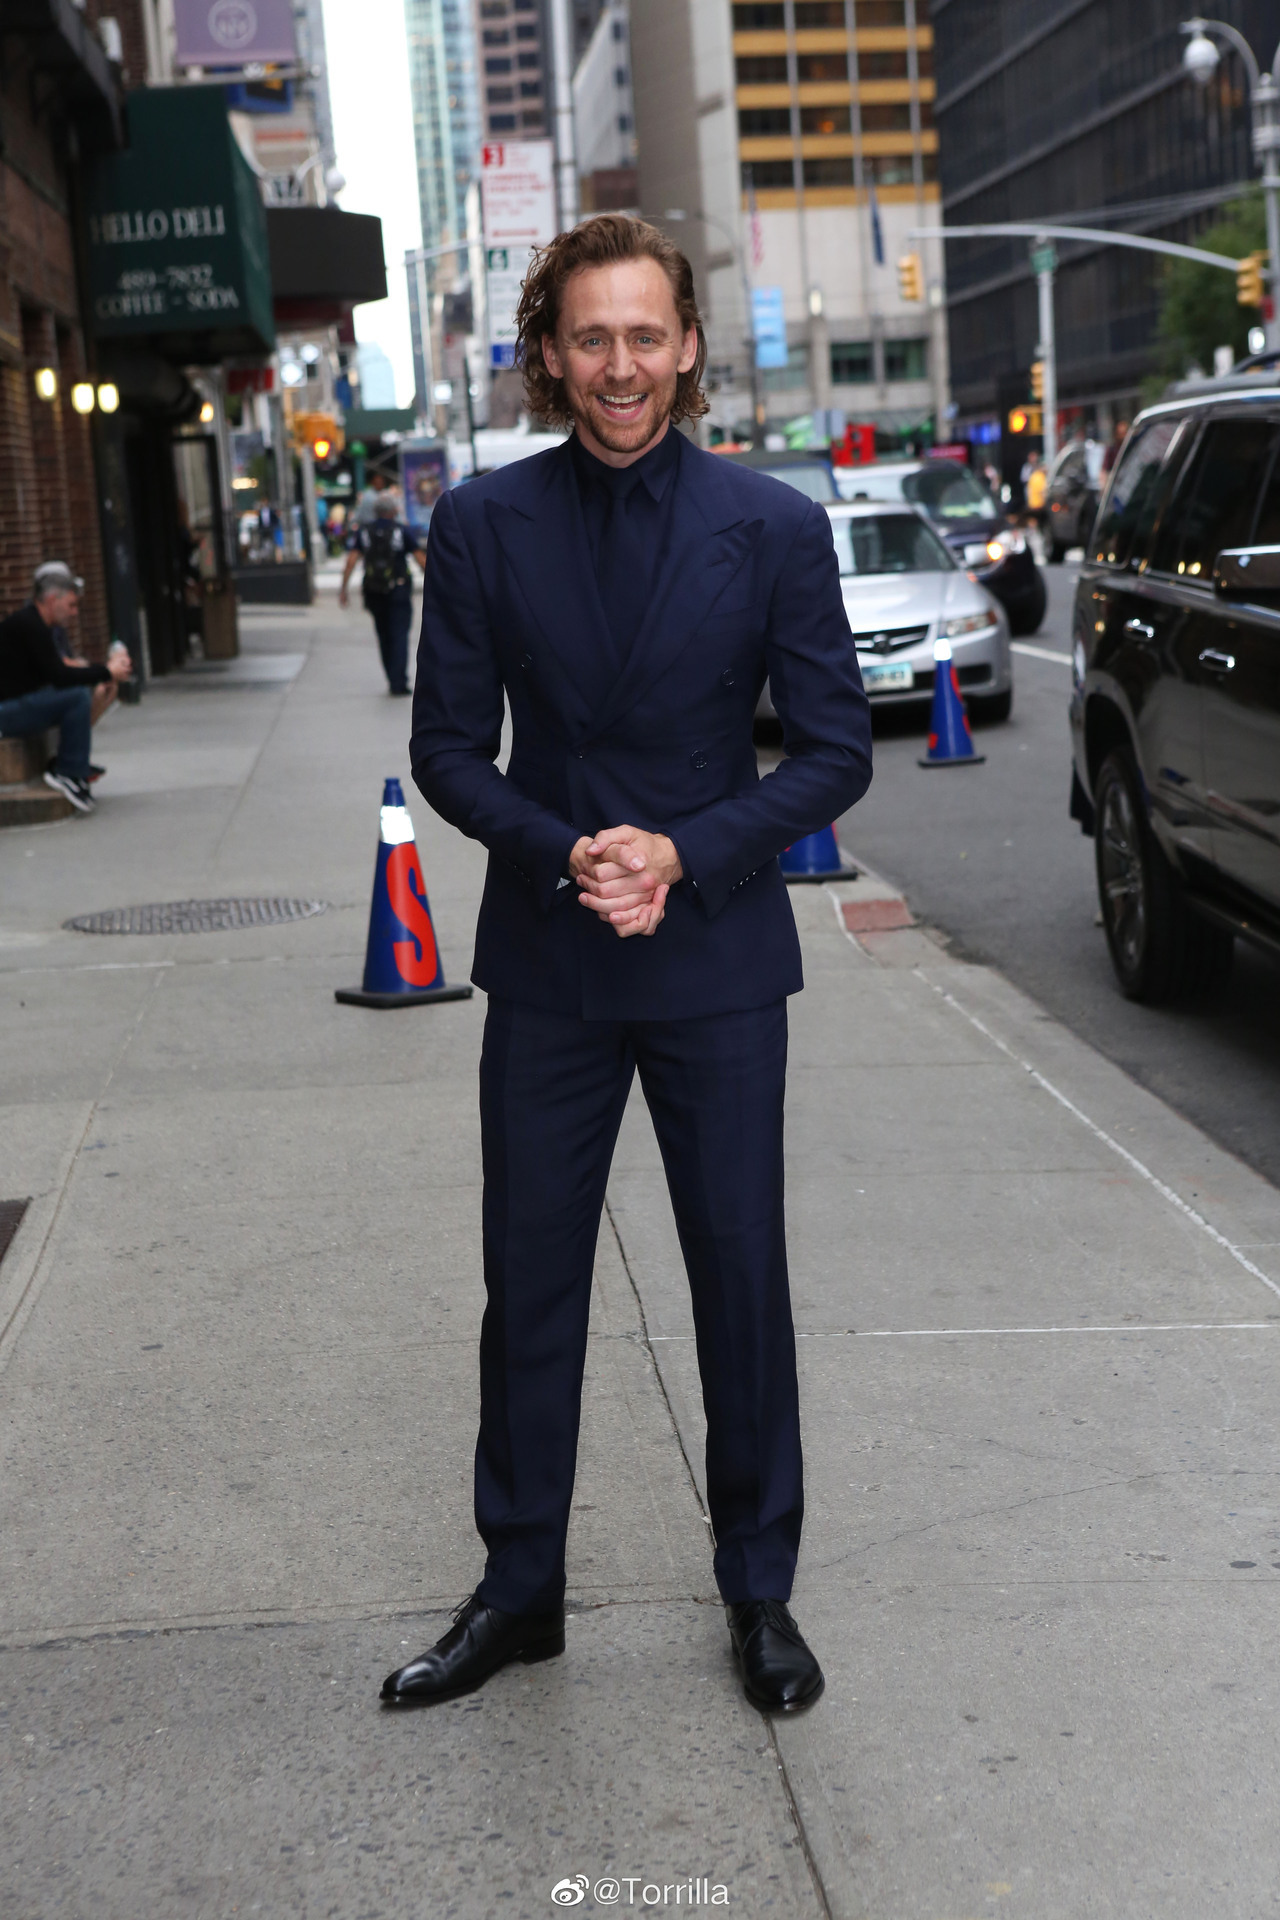 Tom Hiddleston at the Late show with Stephen Colbert September 16, 2019